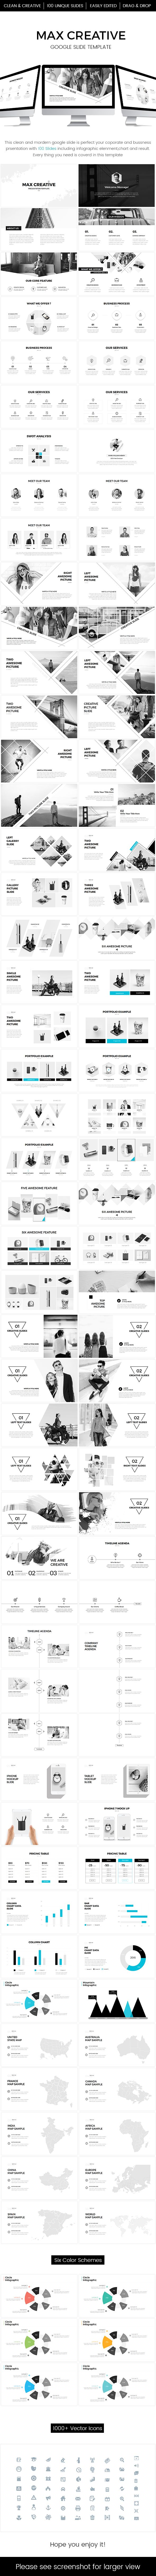 max creative google slide template